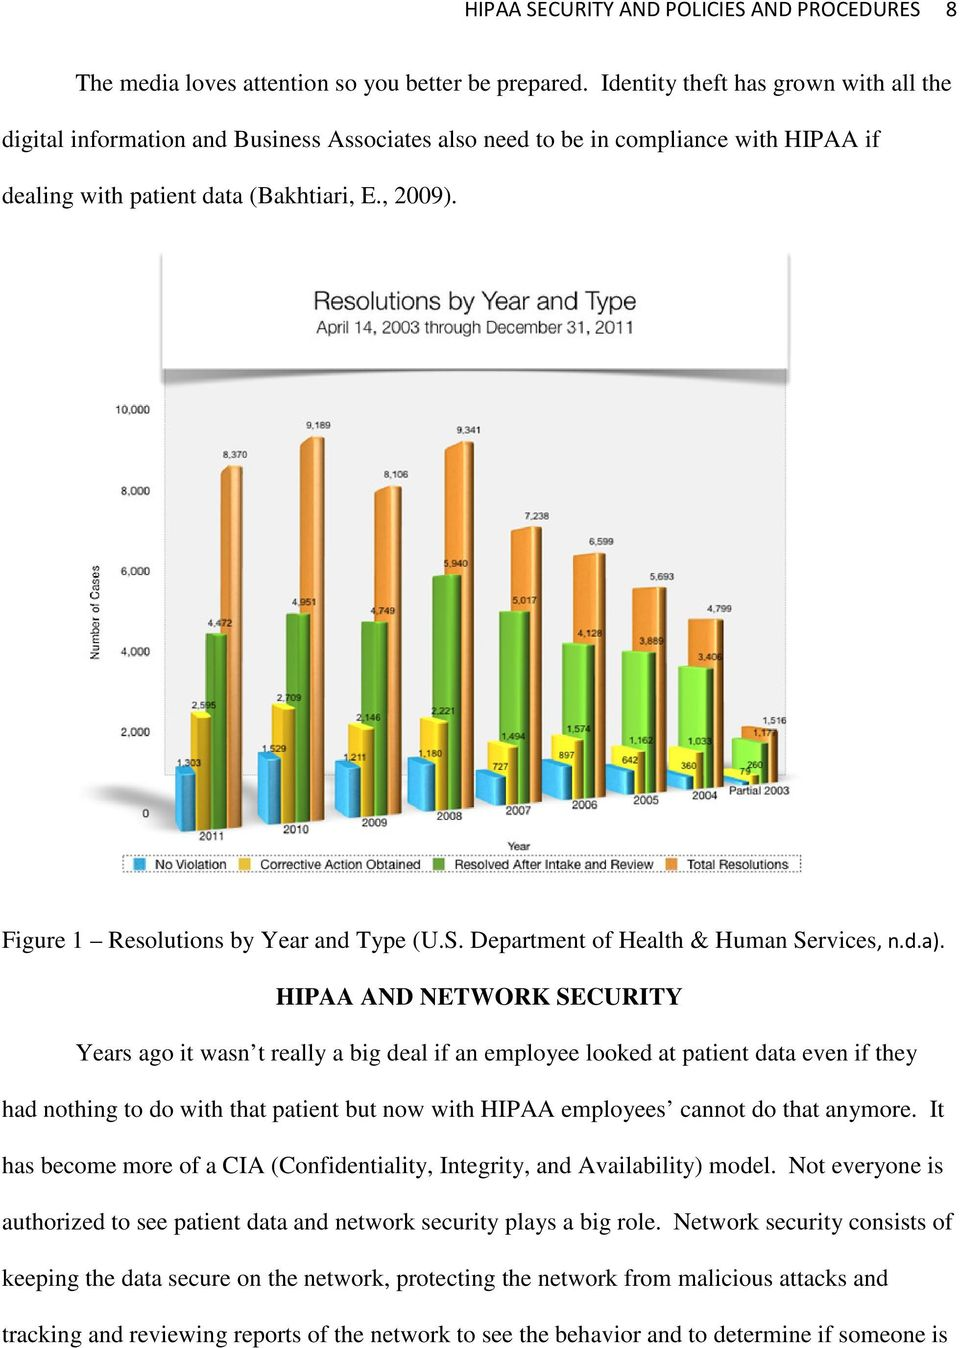 Figure 1 Resolutions by Year and Type (U.S. Department of Health & Human Services, n.d.a).